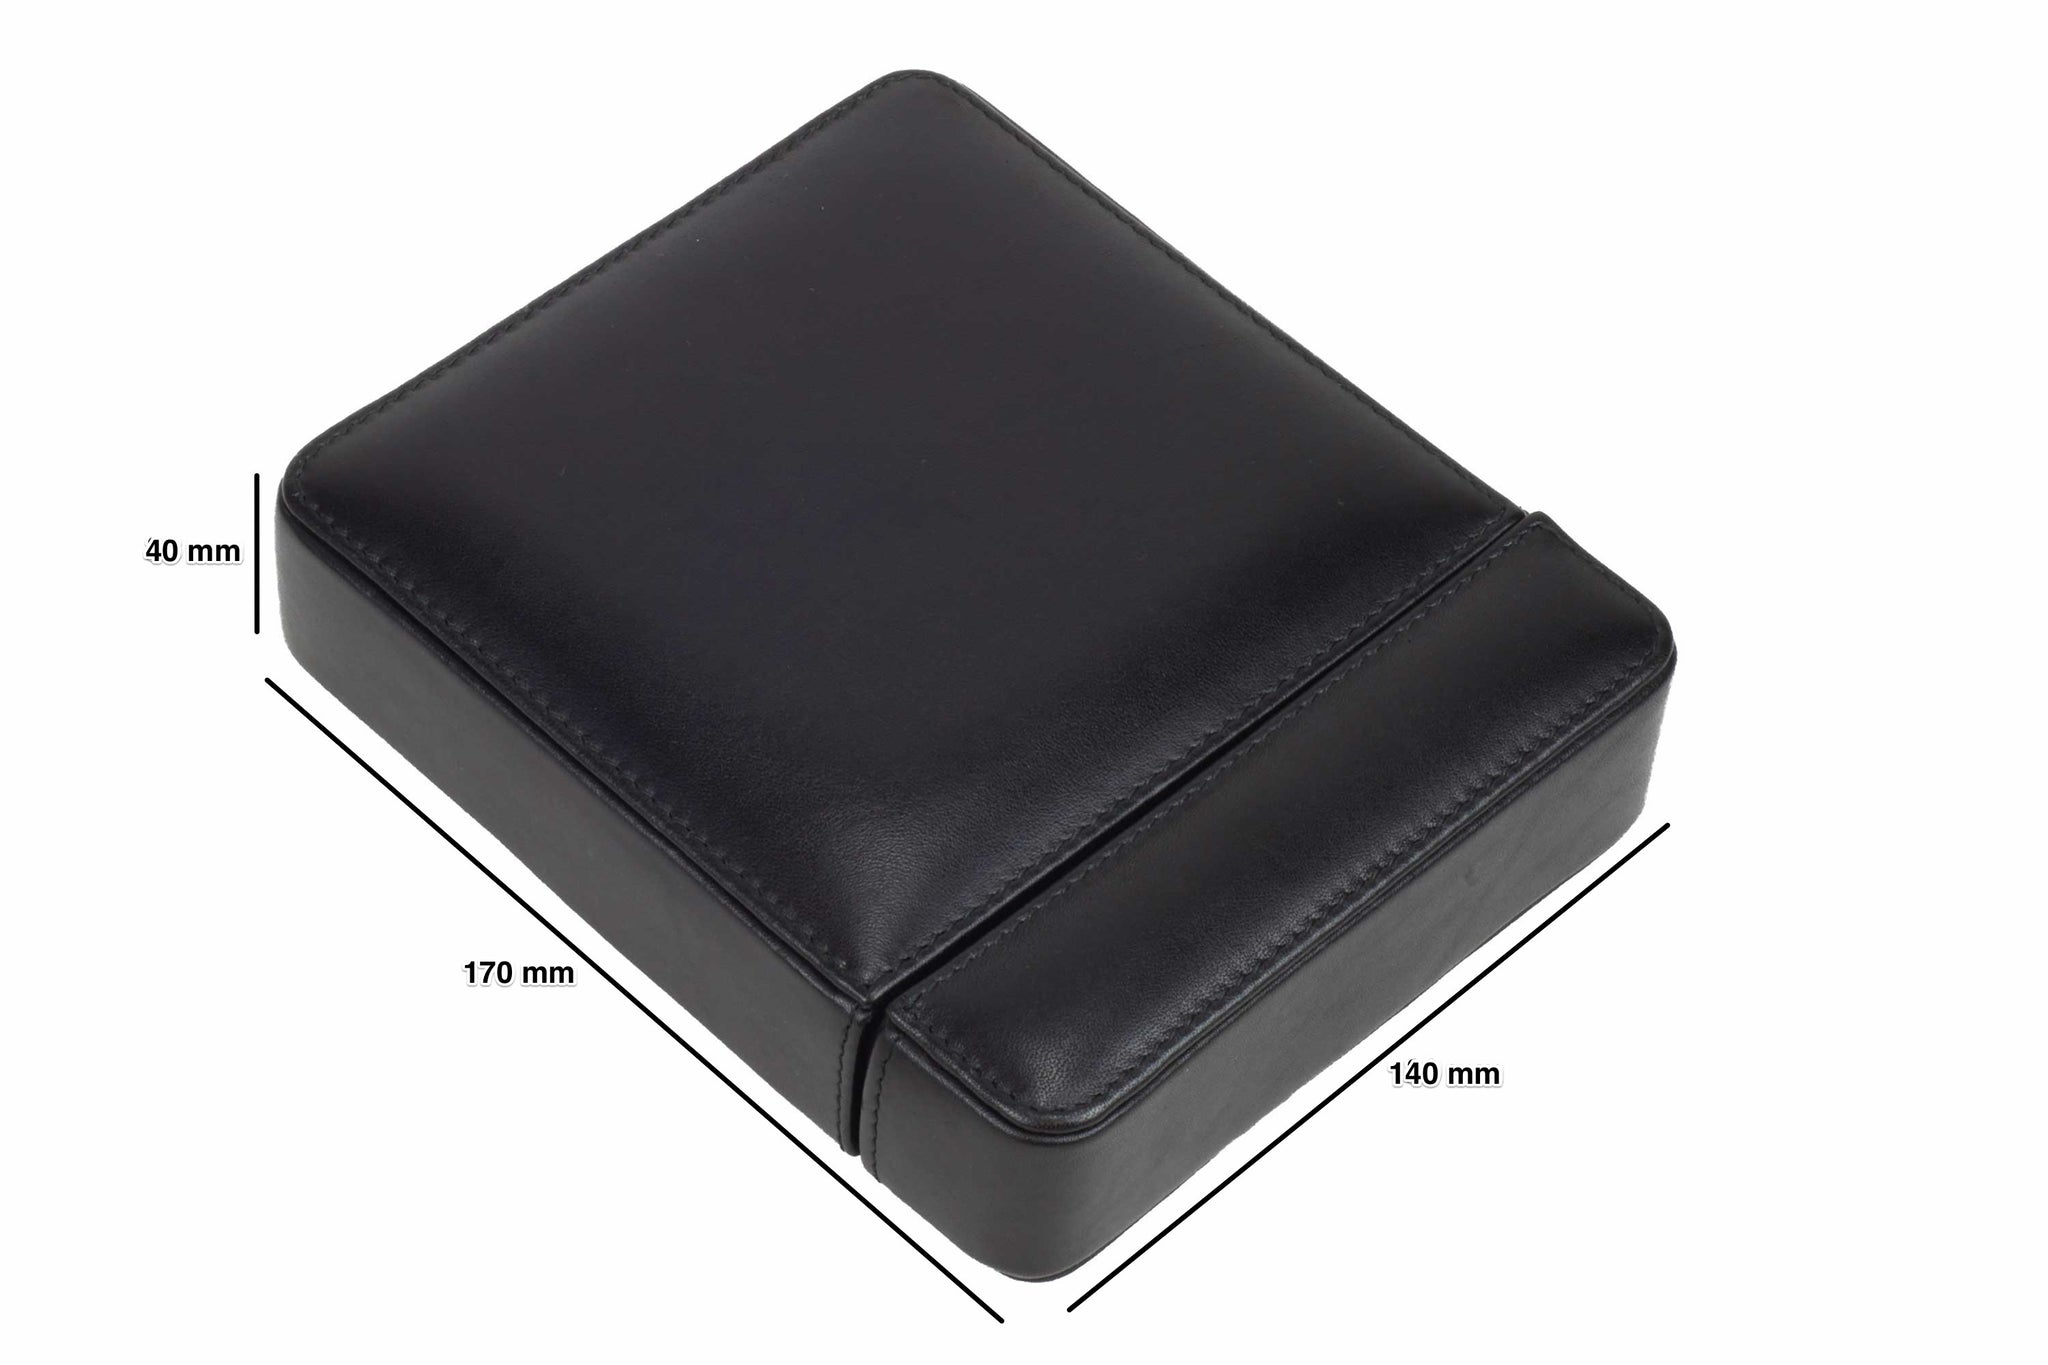 DiLoro Italian Leather Double Travel Watch Box Case Holder in Black - Dimensions